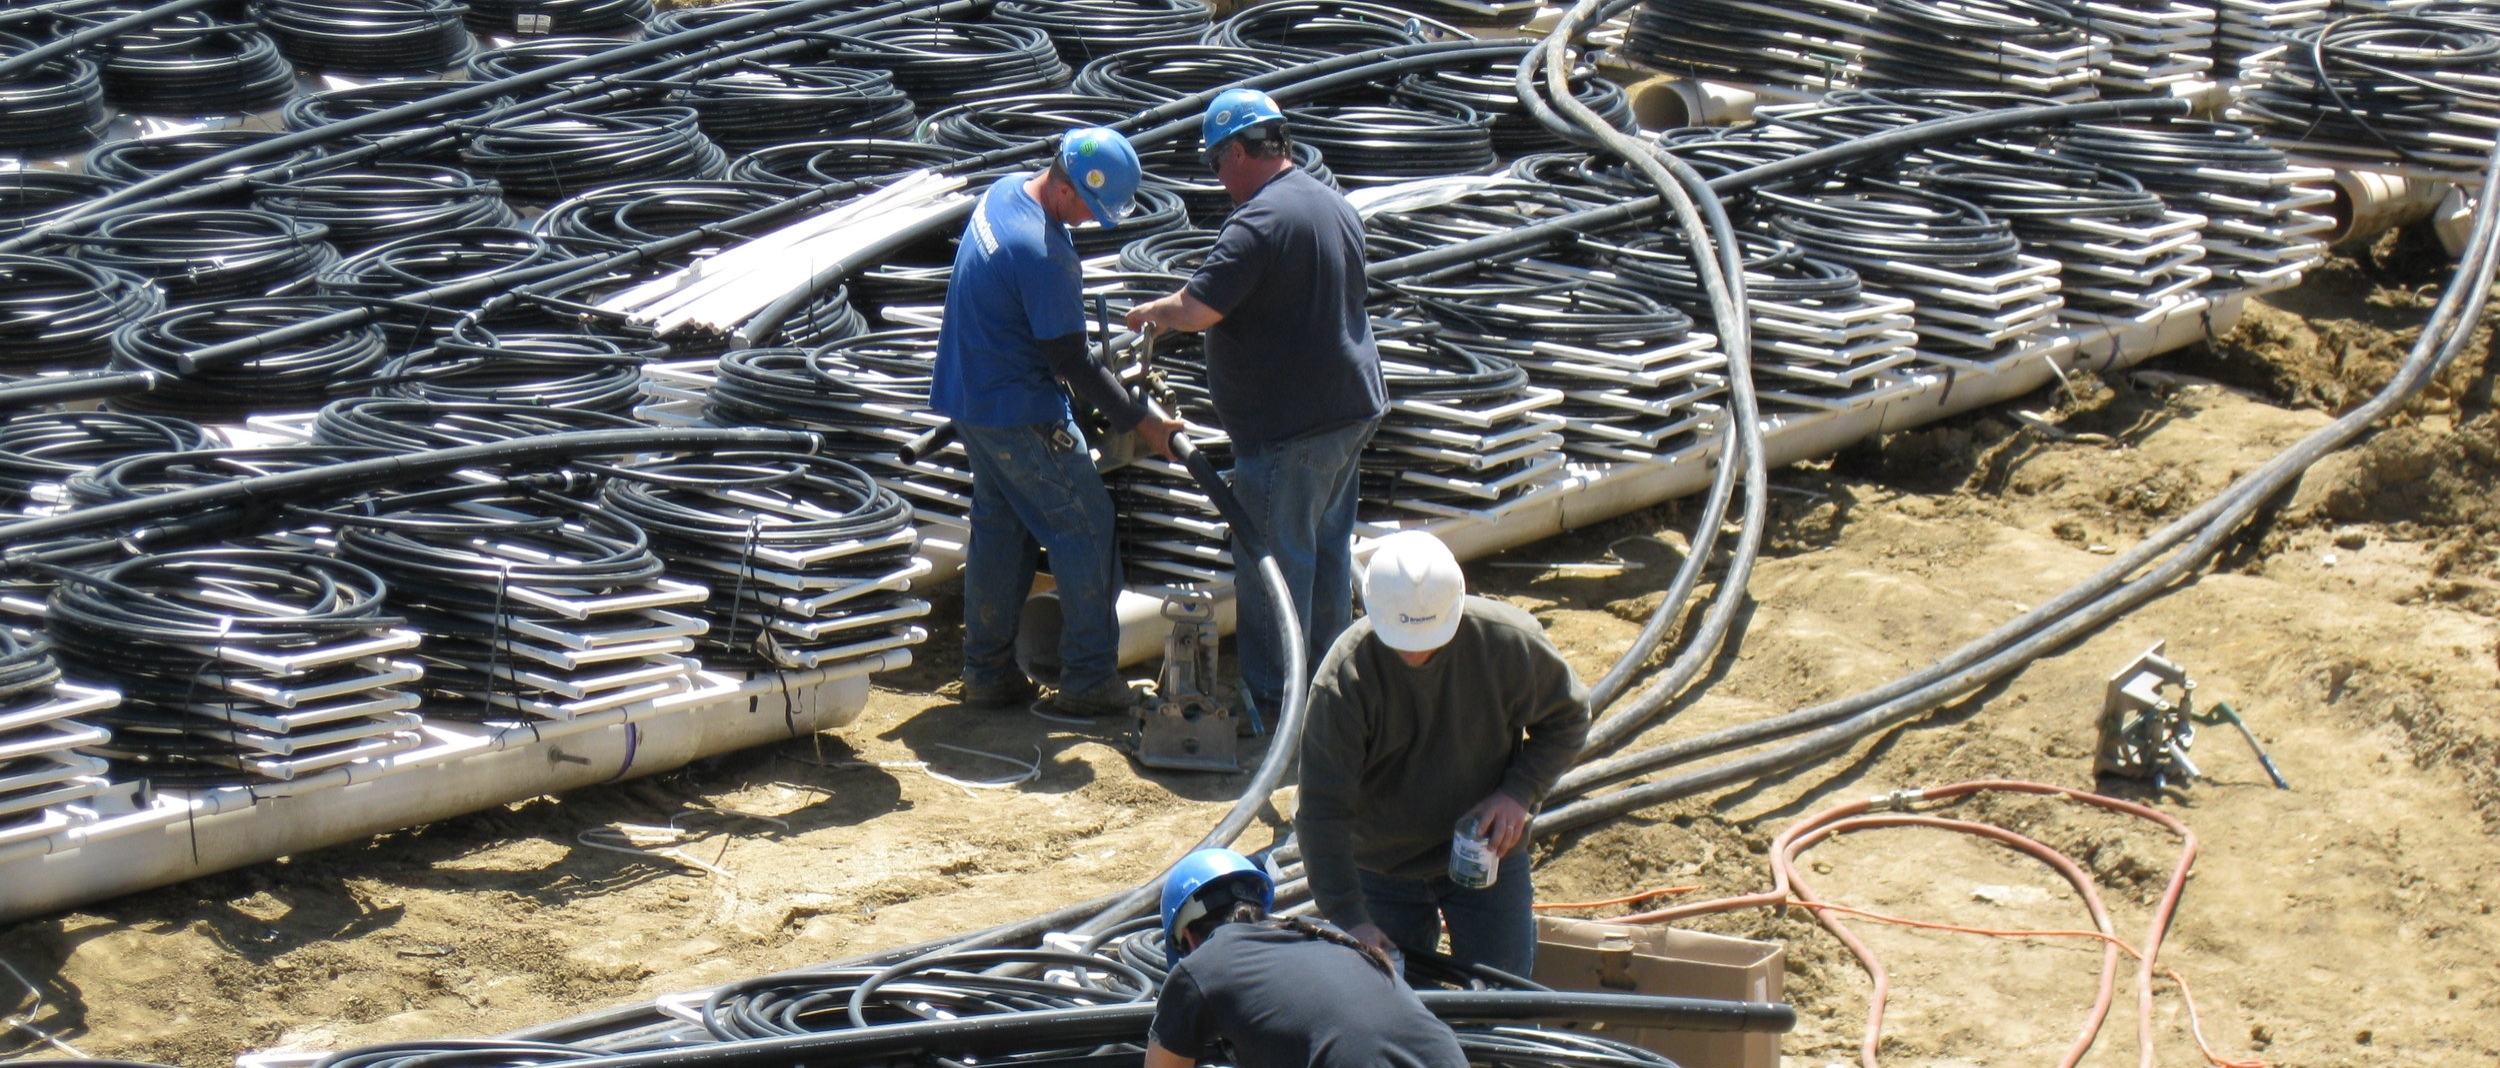 SAFETY IN THE WORKPLACE -